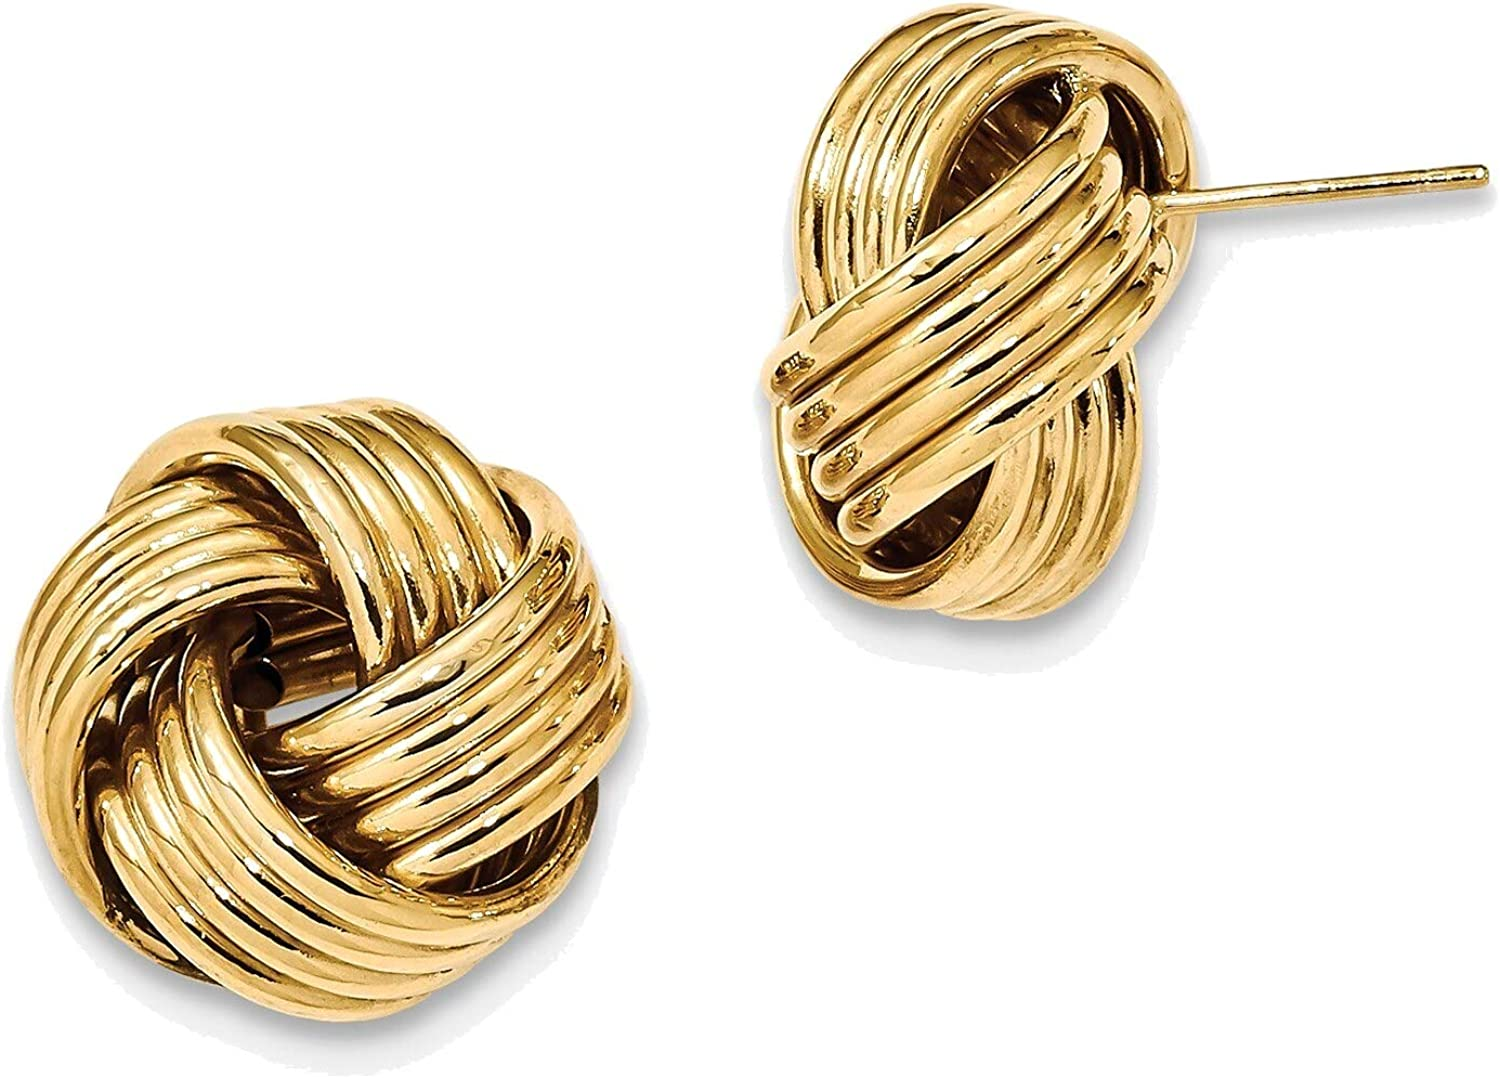 Polished Love Knot Post Earrings in 14K Yellow Gold